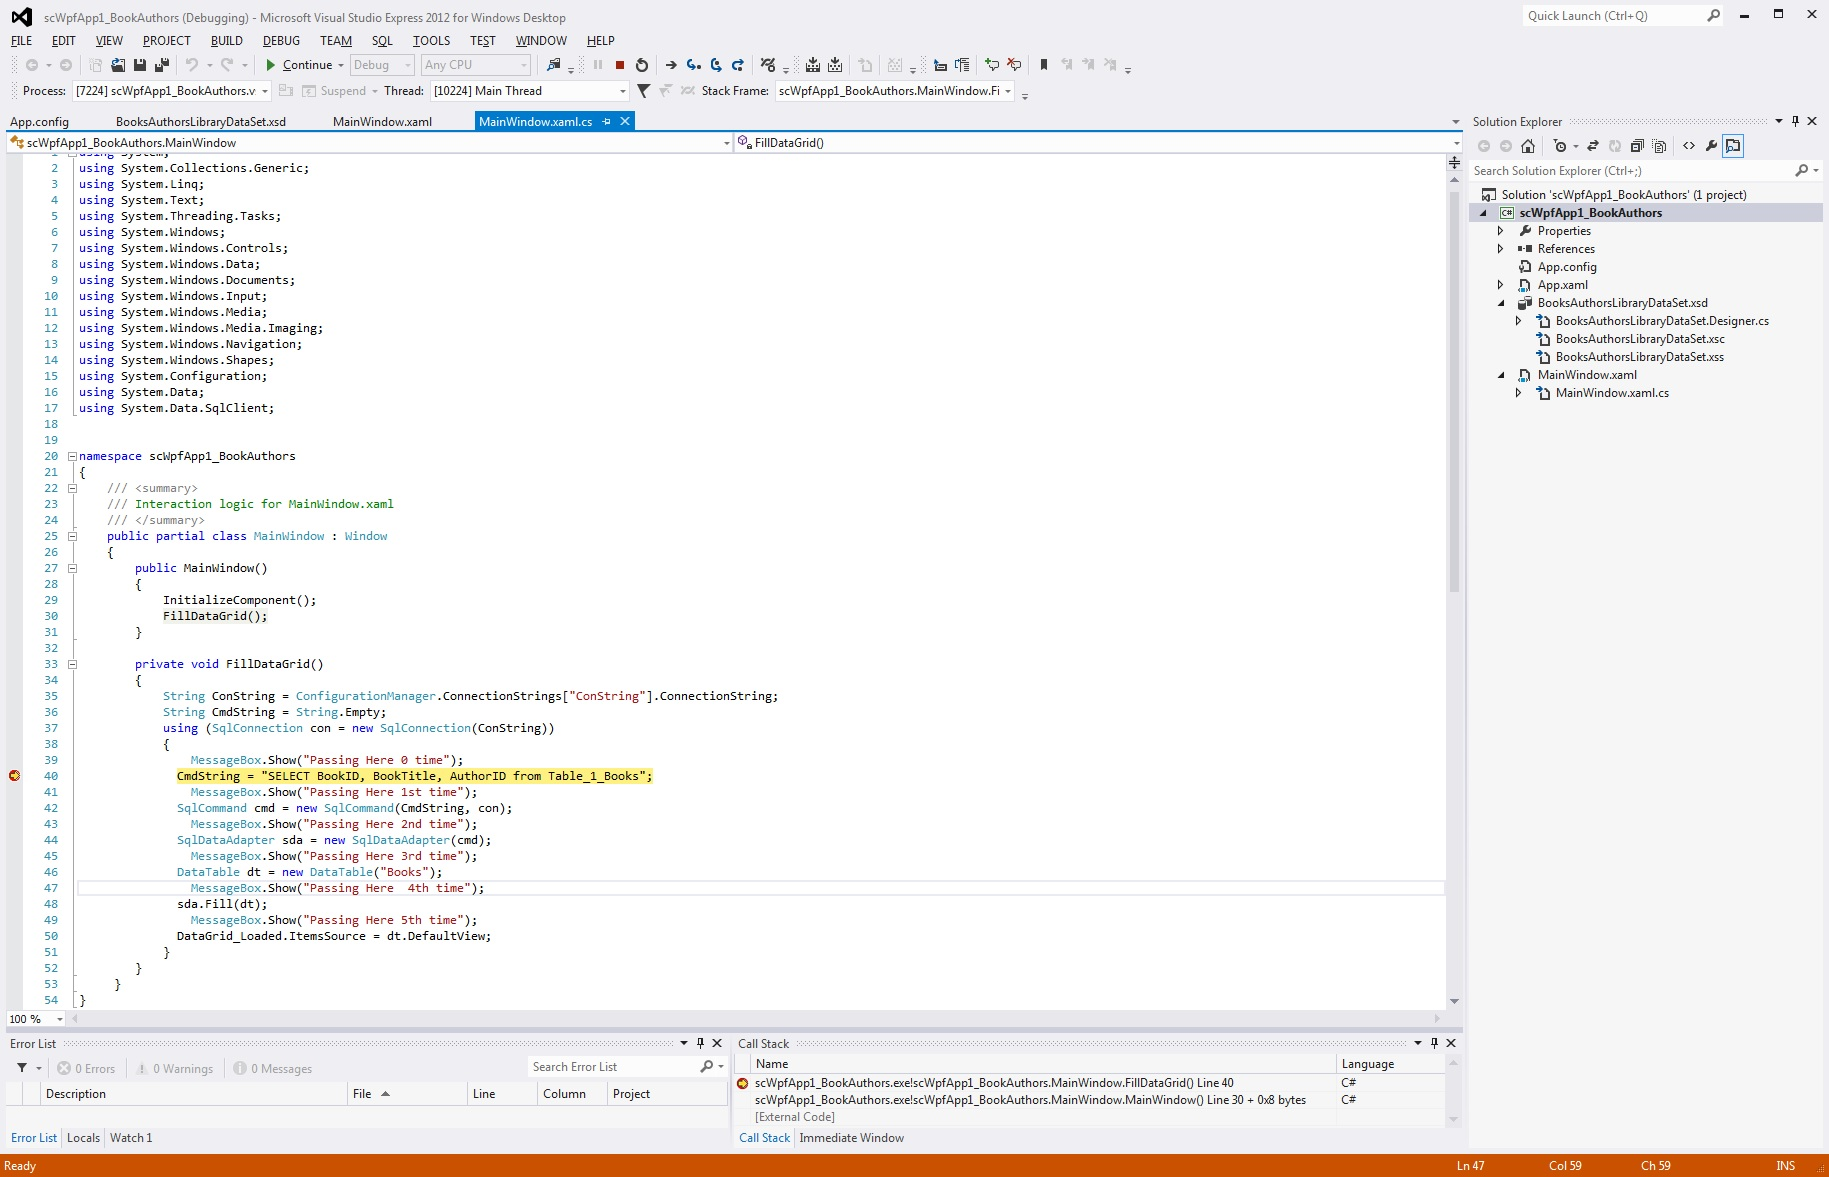 how to find sql server 2012 connection string